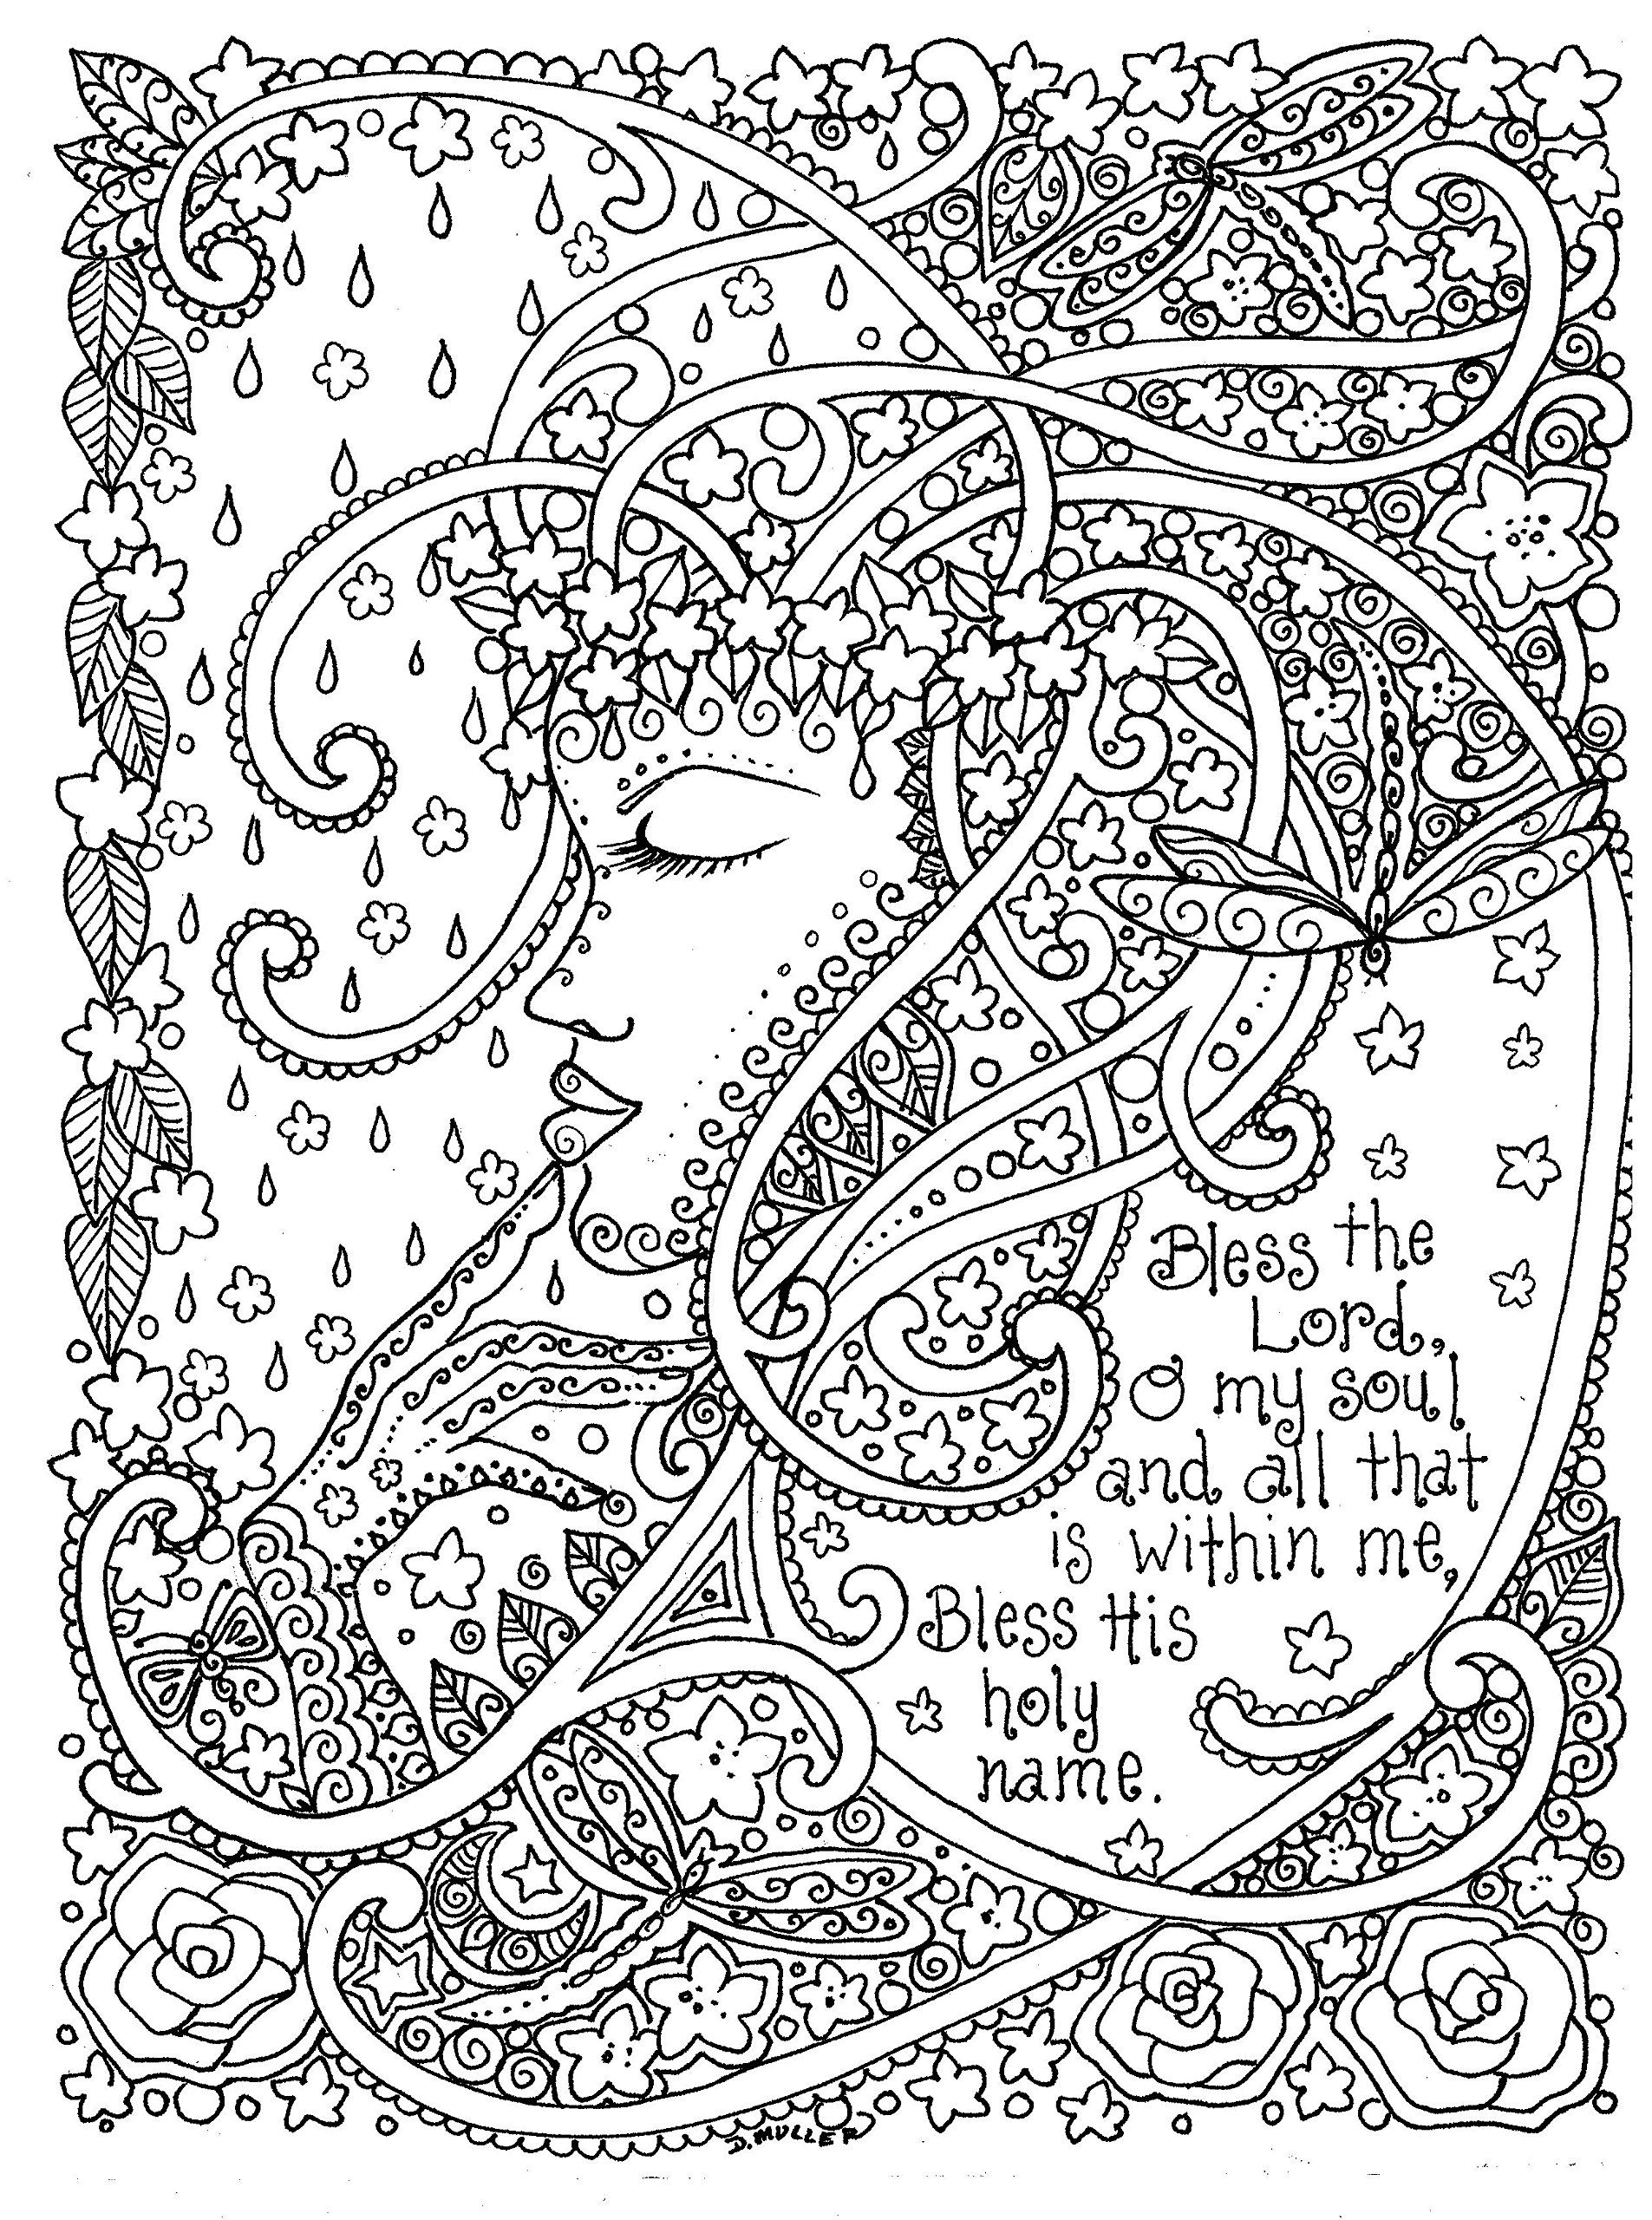 Coloring book inspirational - Adult Coloring Prayers To Color By Deborah Muller Inspirational Messages Of